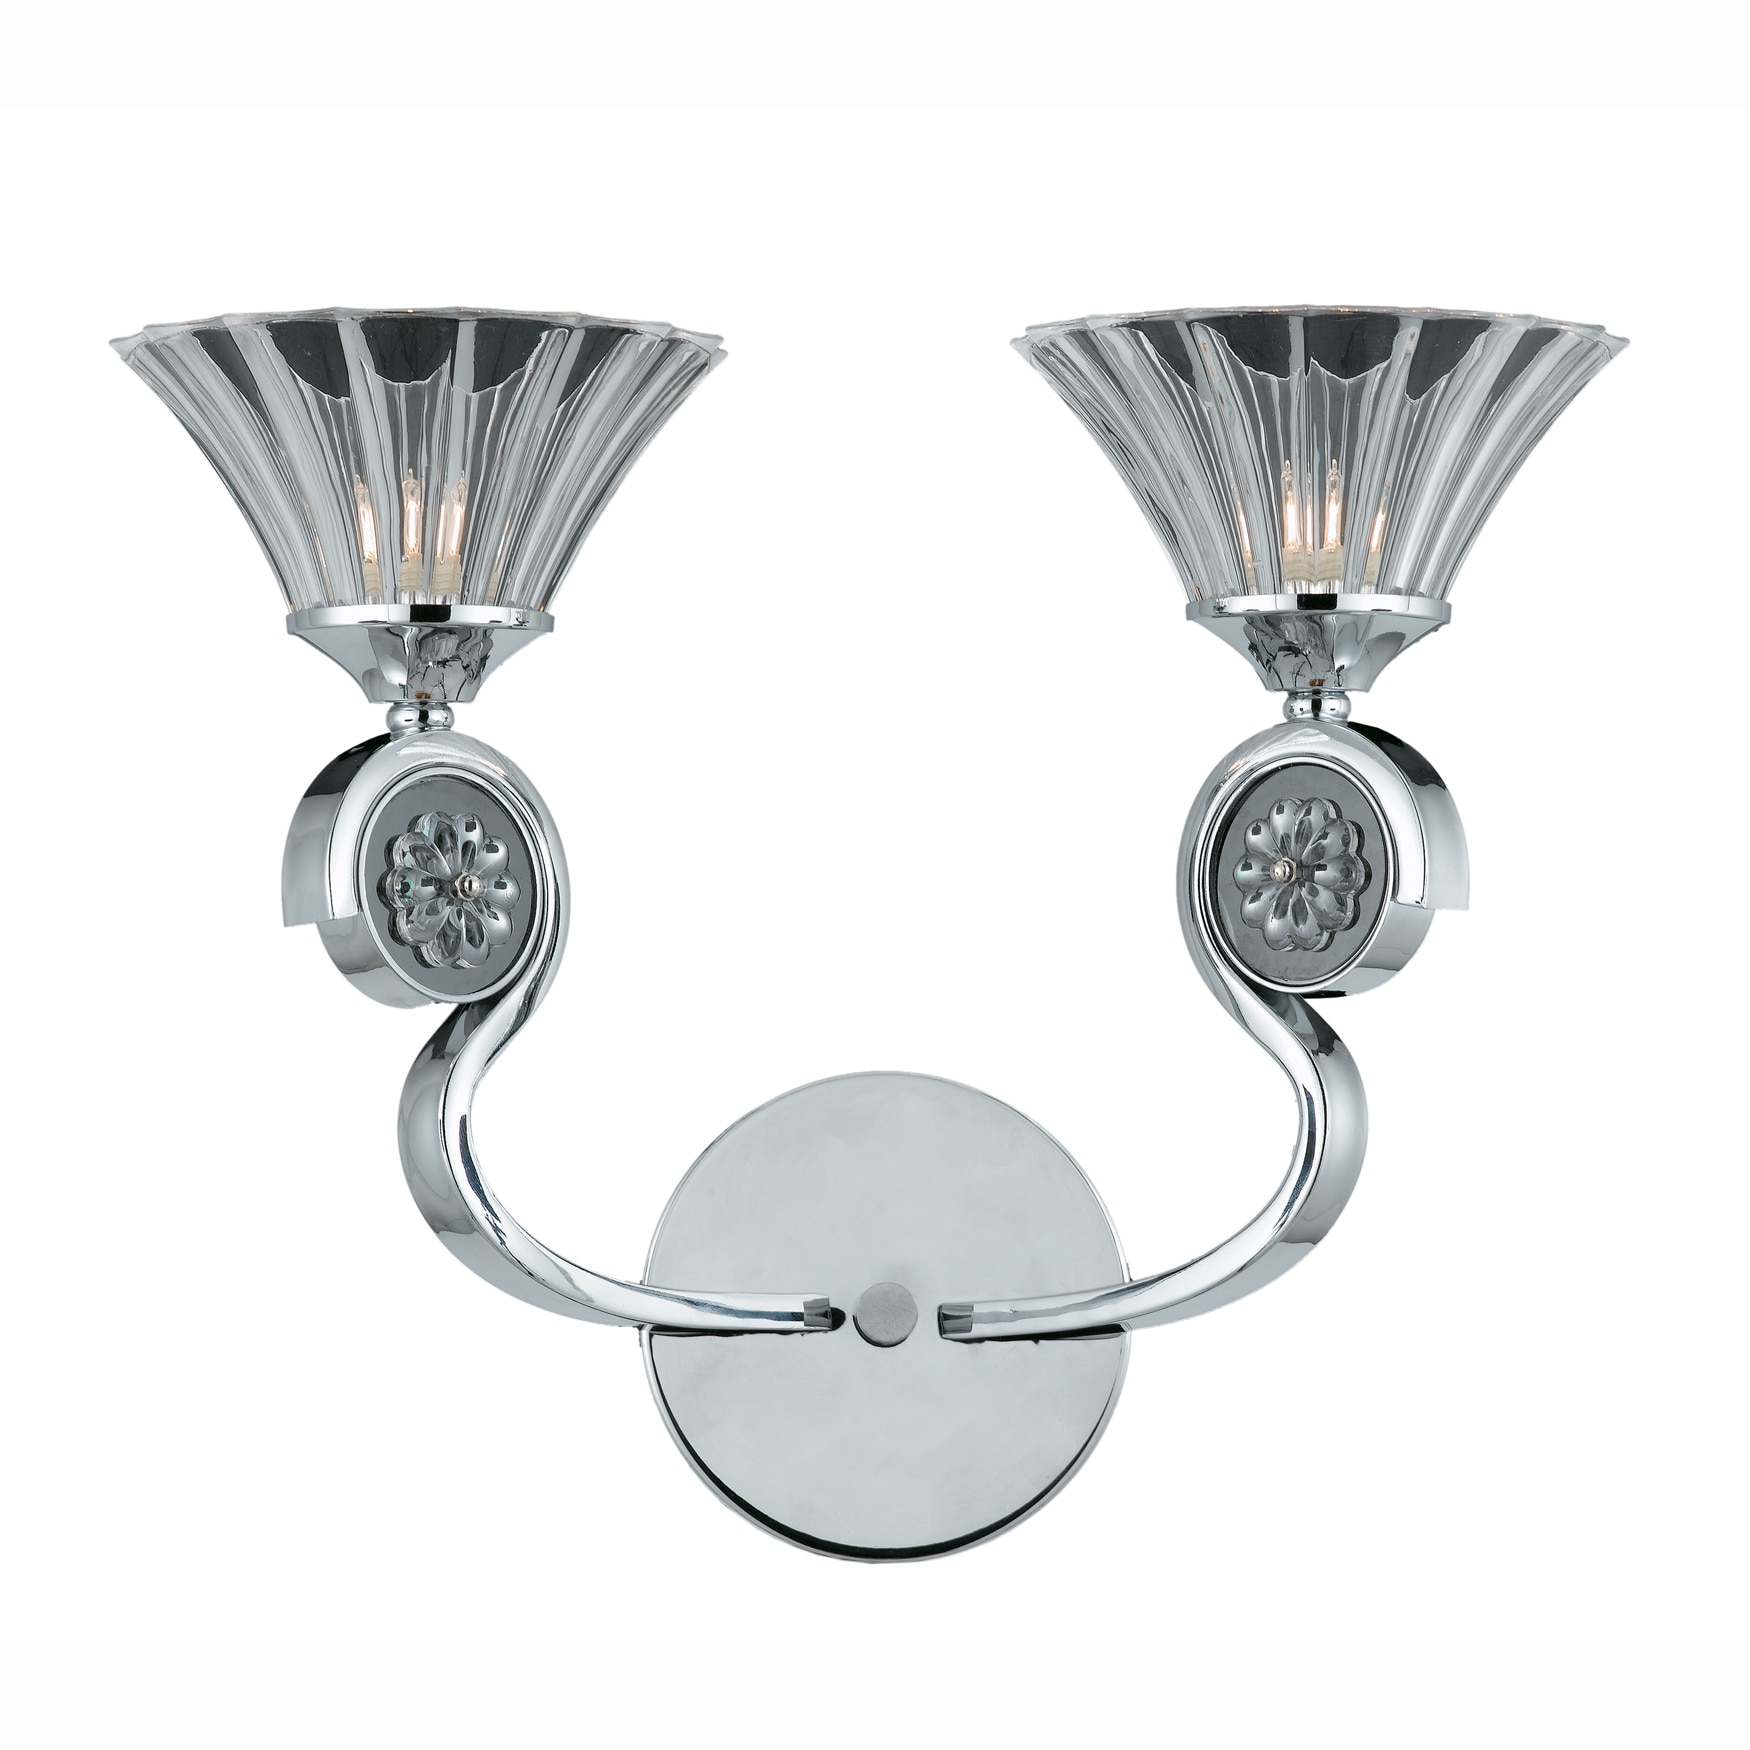 Medallion 2-light Wall Sconce in Chrome Finish